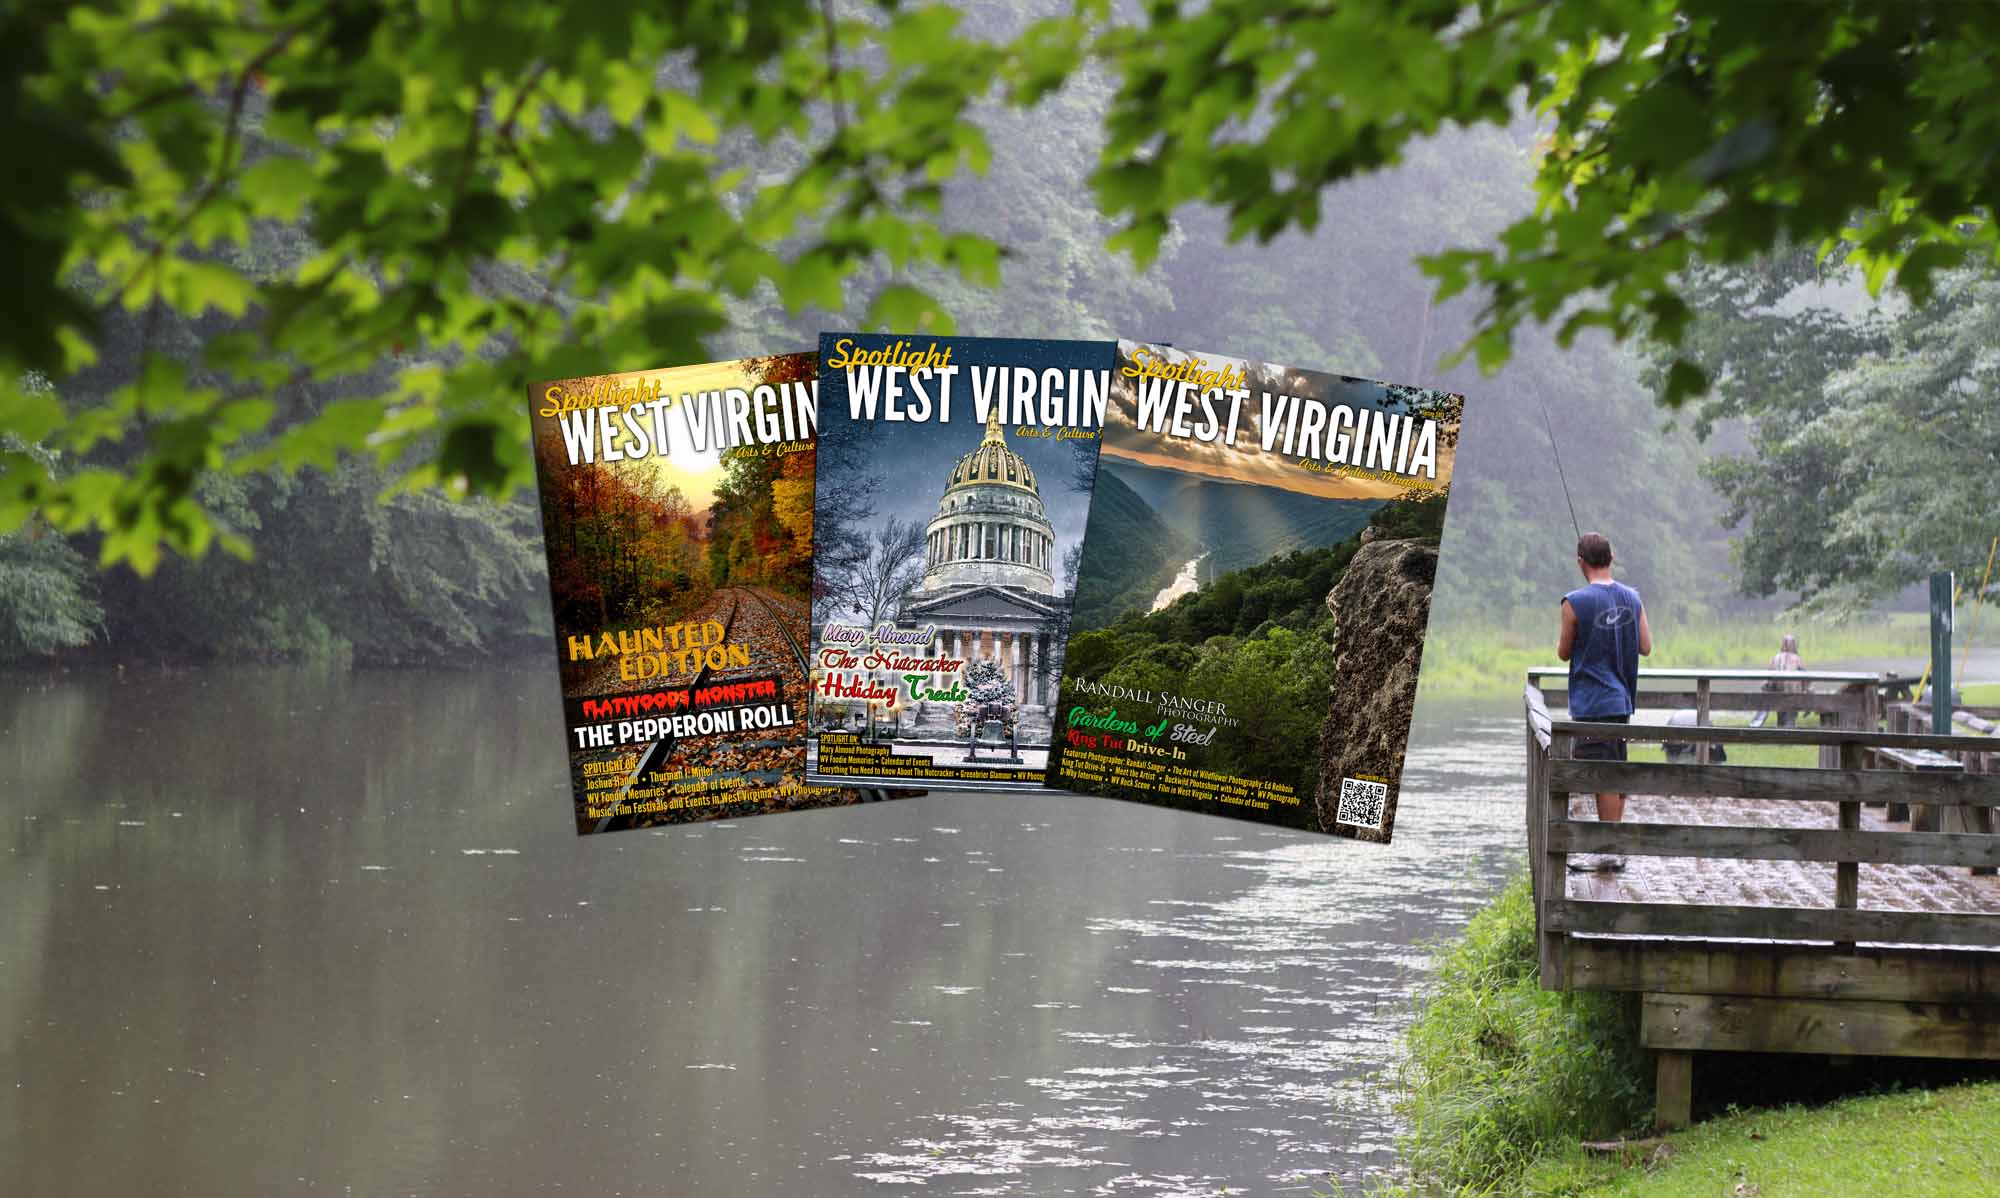 PUBLISHING: SPOTLIGHT WEST VIRGINIA MAGAZINE